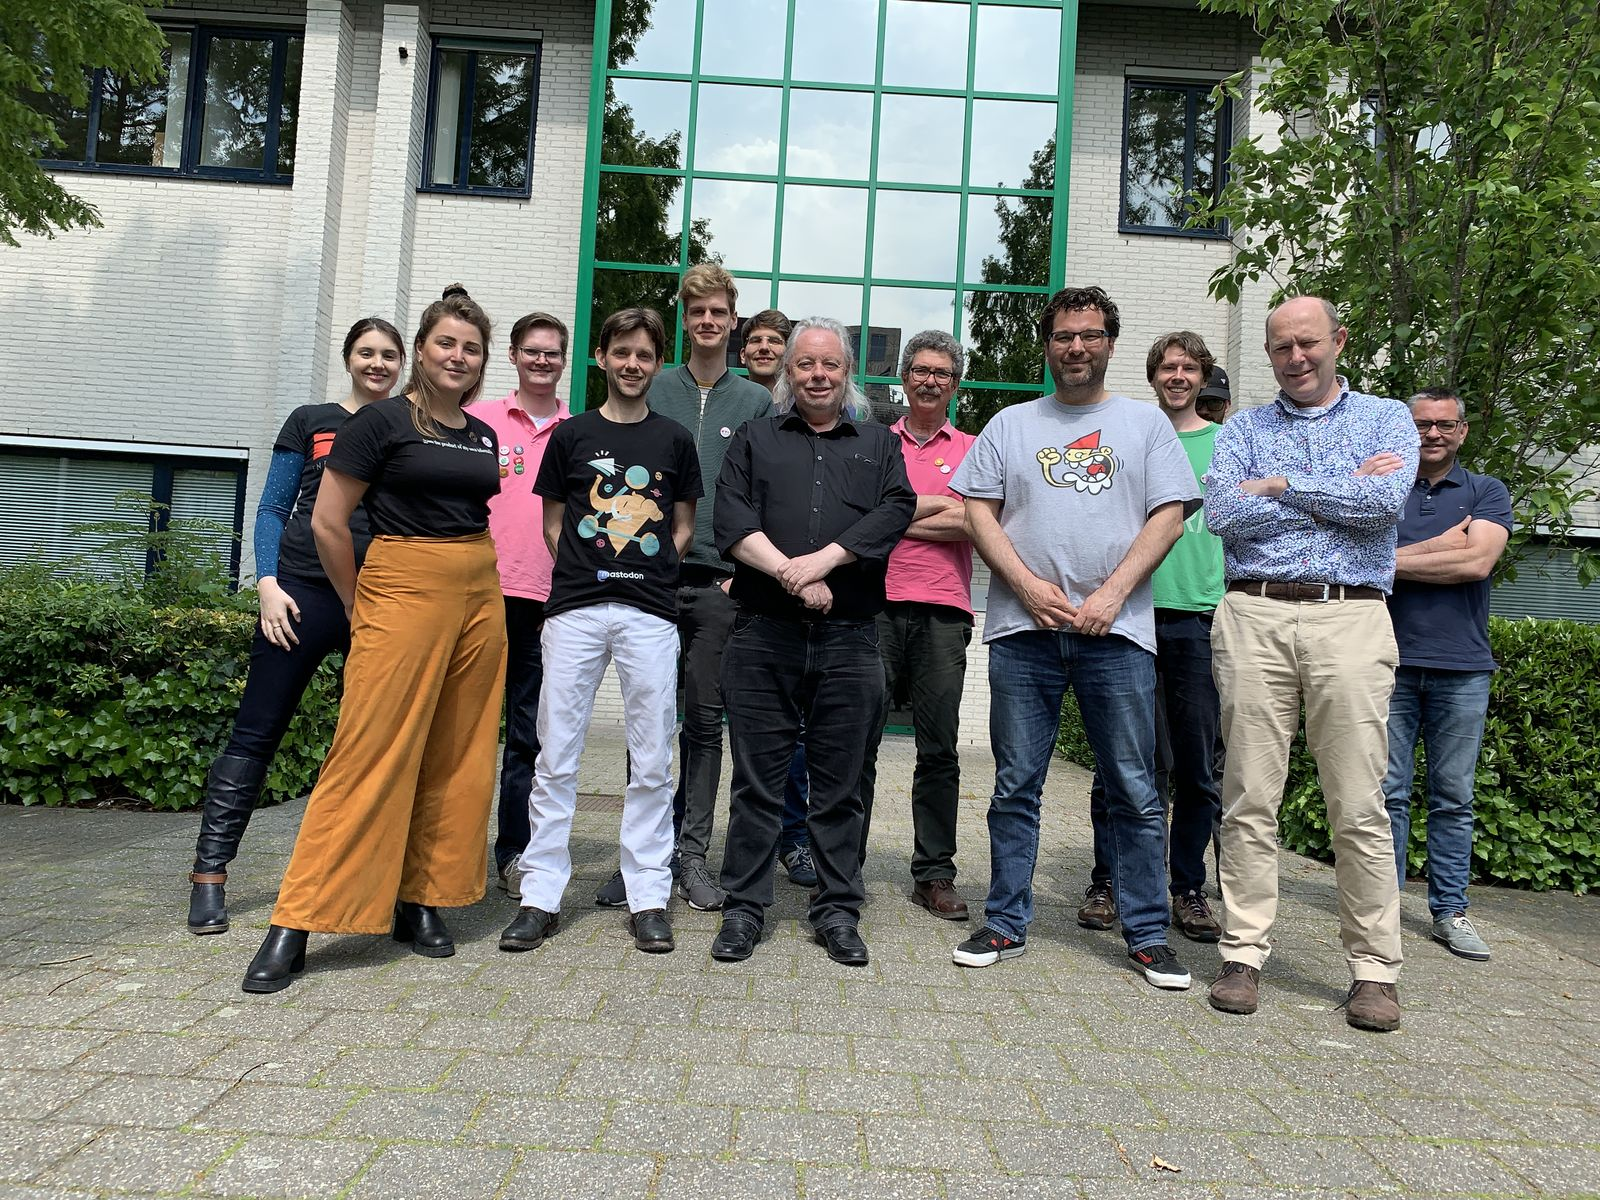 IWC Utrecht 2019 attendees outside, Saturday